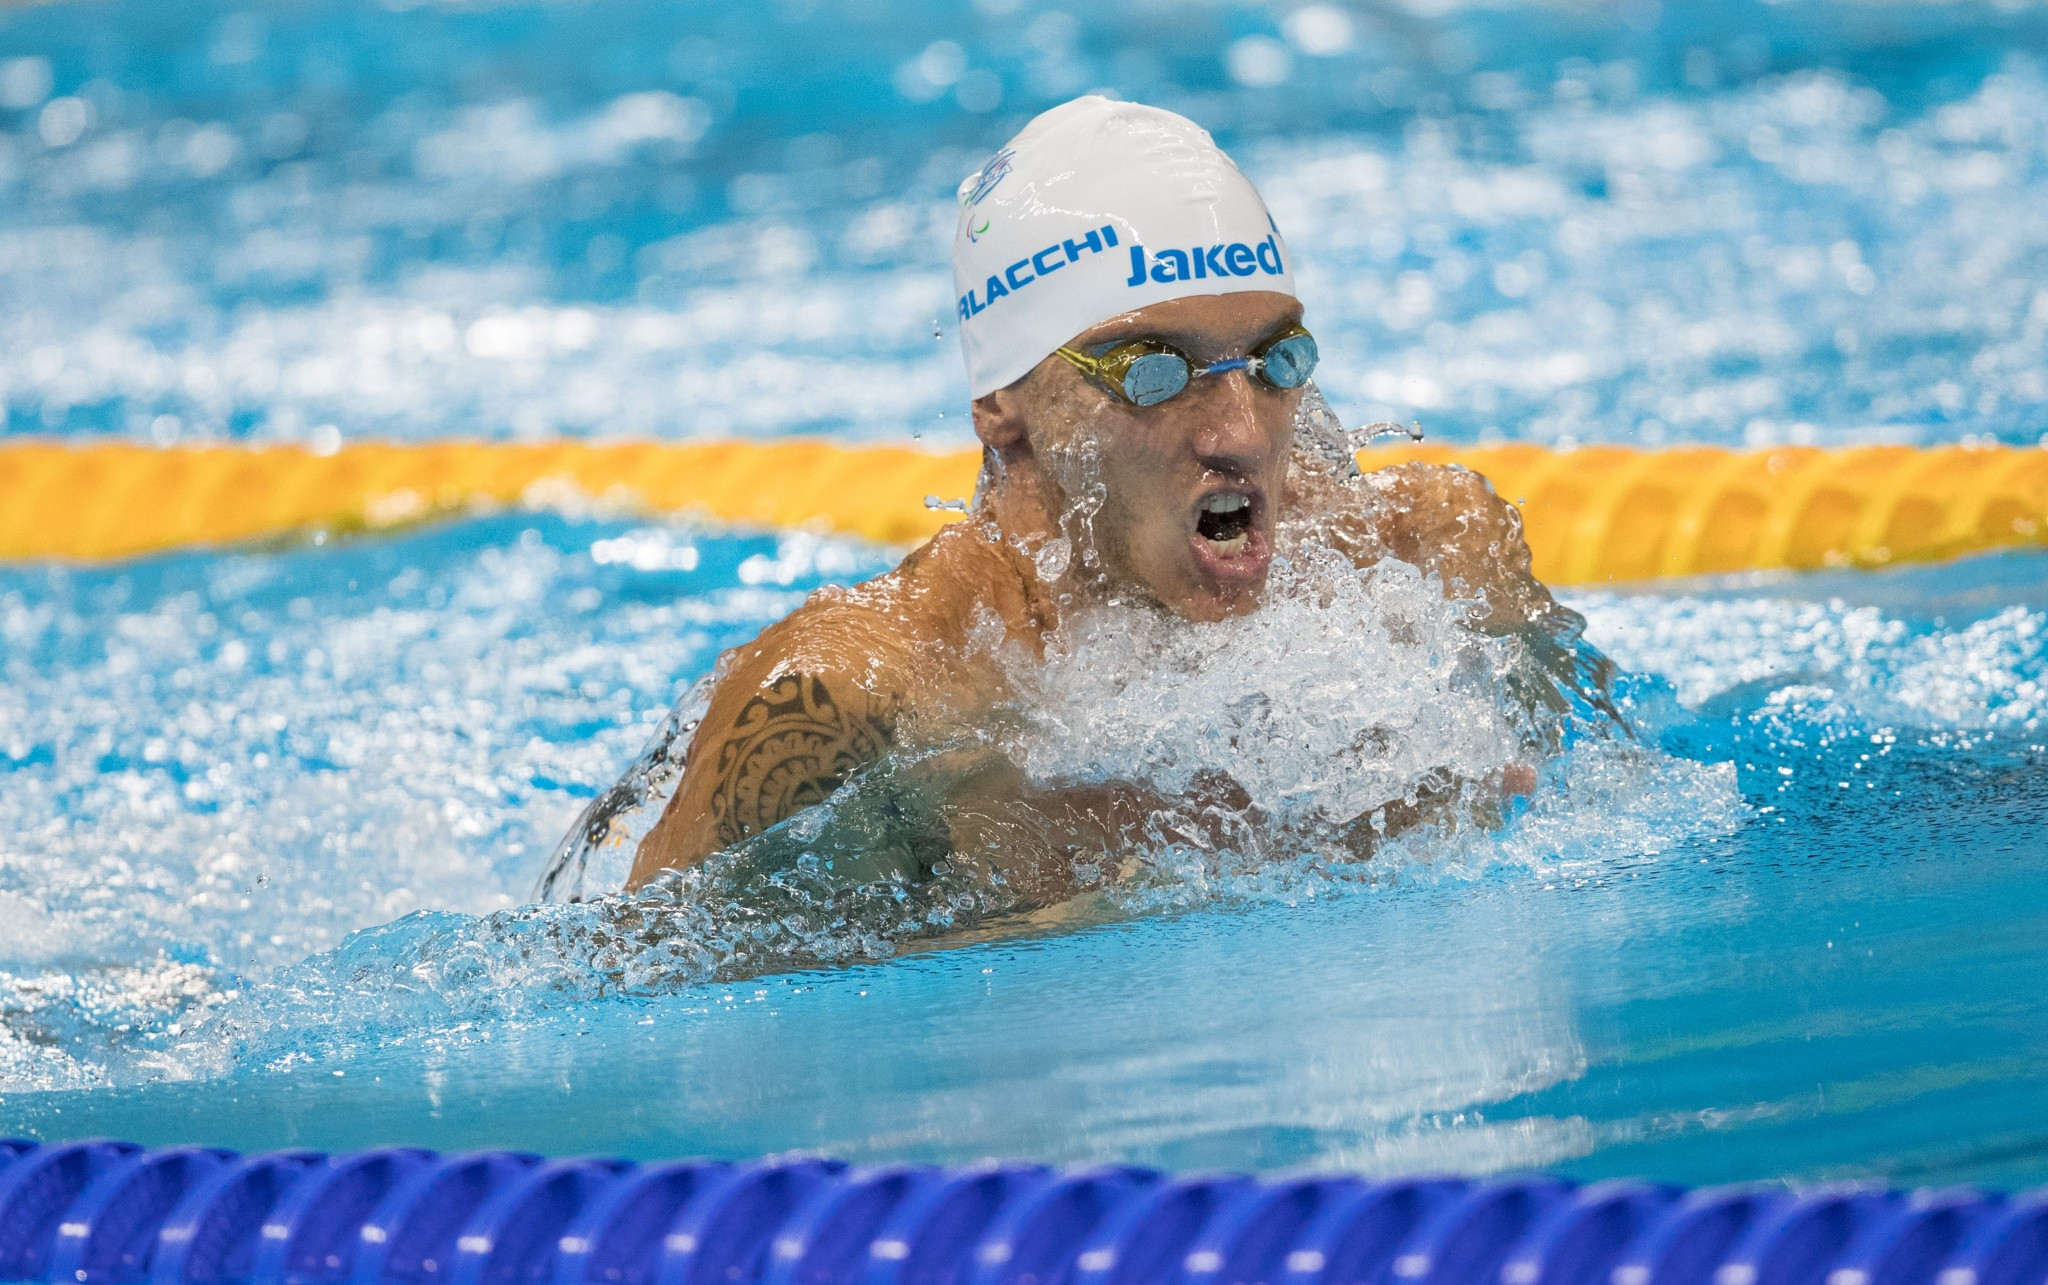 Rio 2016 winners headline Italian team for World Para Swimming Championships